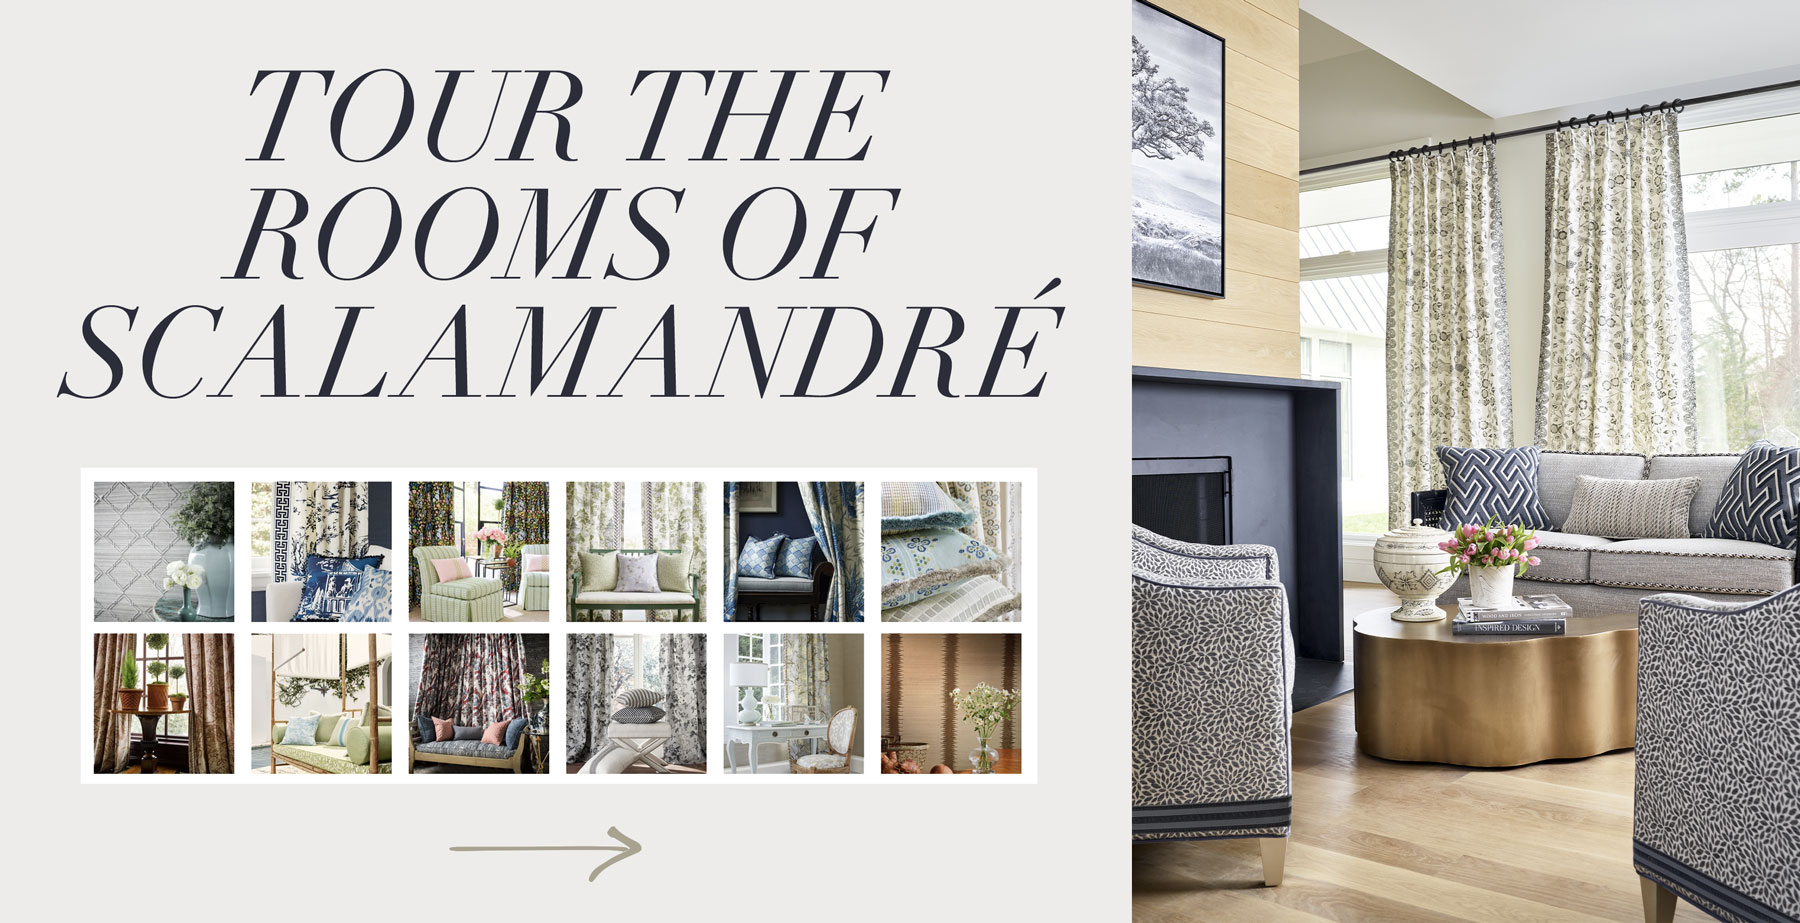 The Rooms of Scalamandre